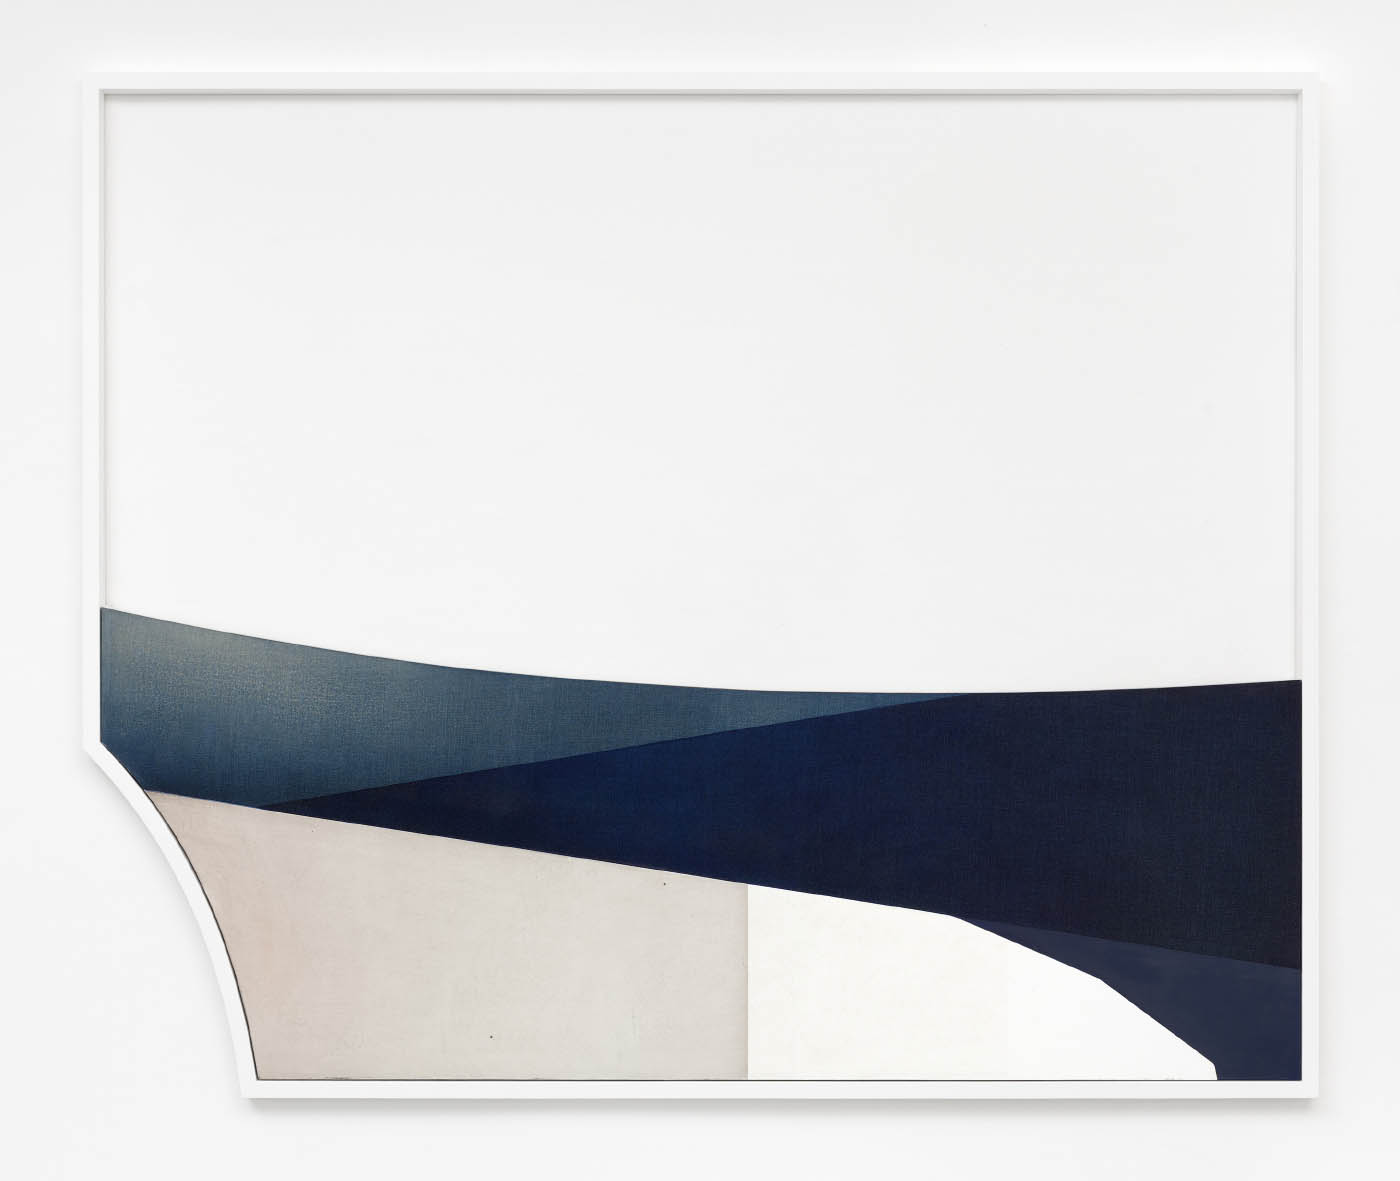 Untitled, 2015, oil on canvas, 70 x 190 cm